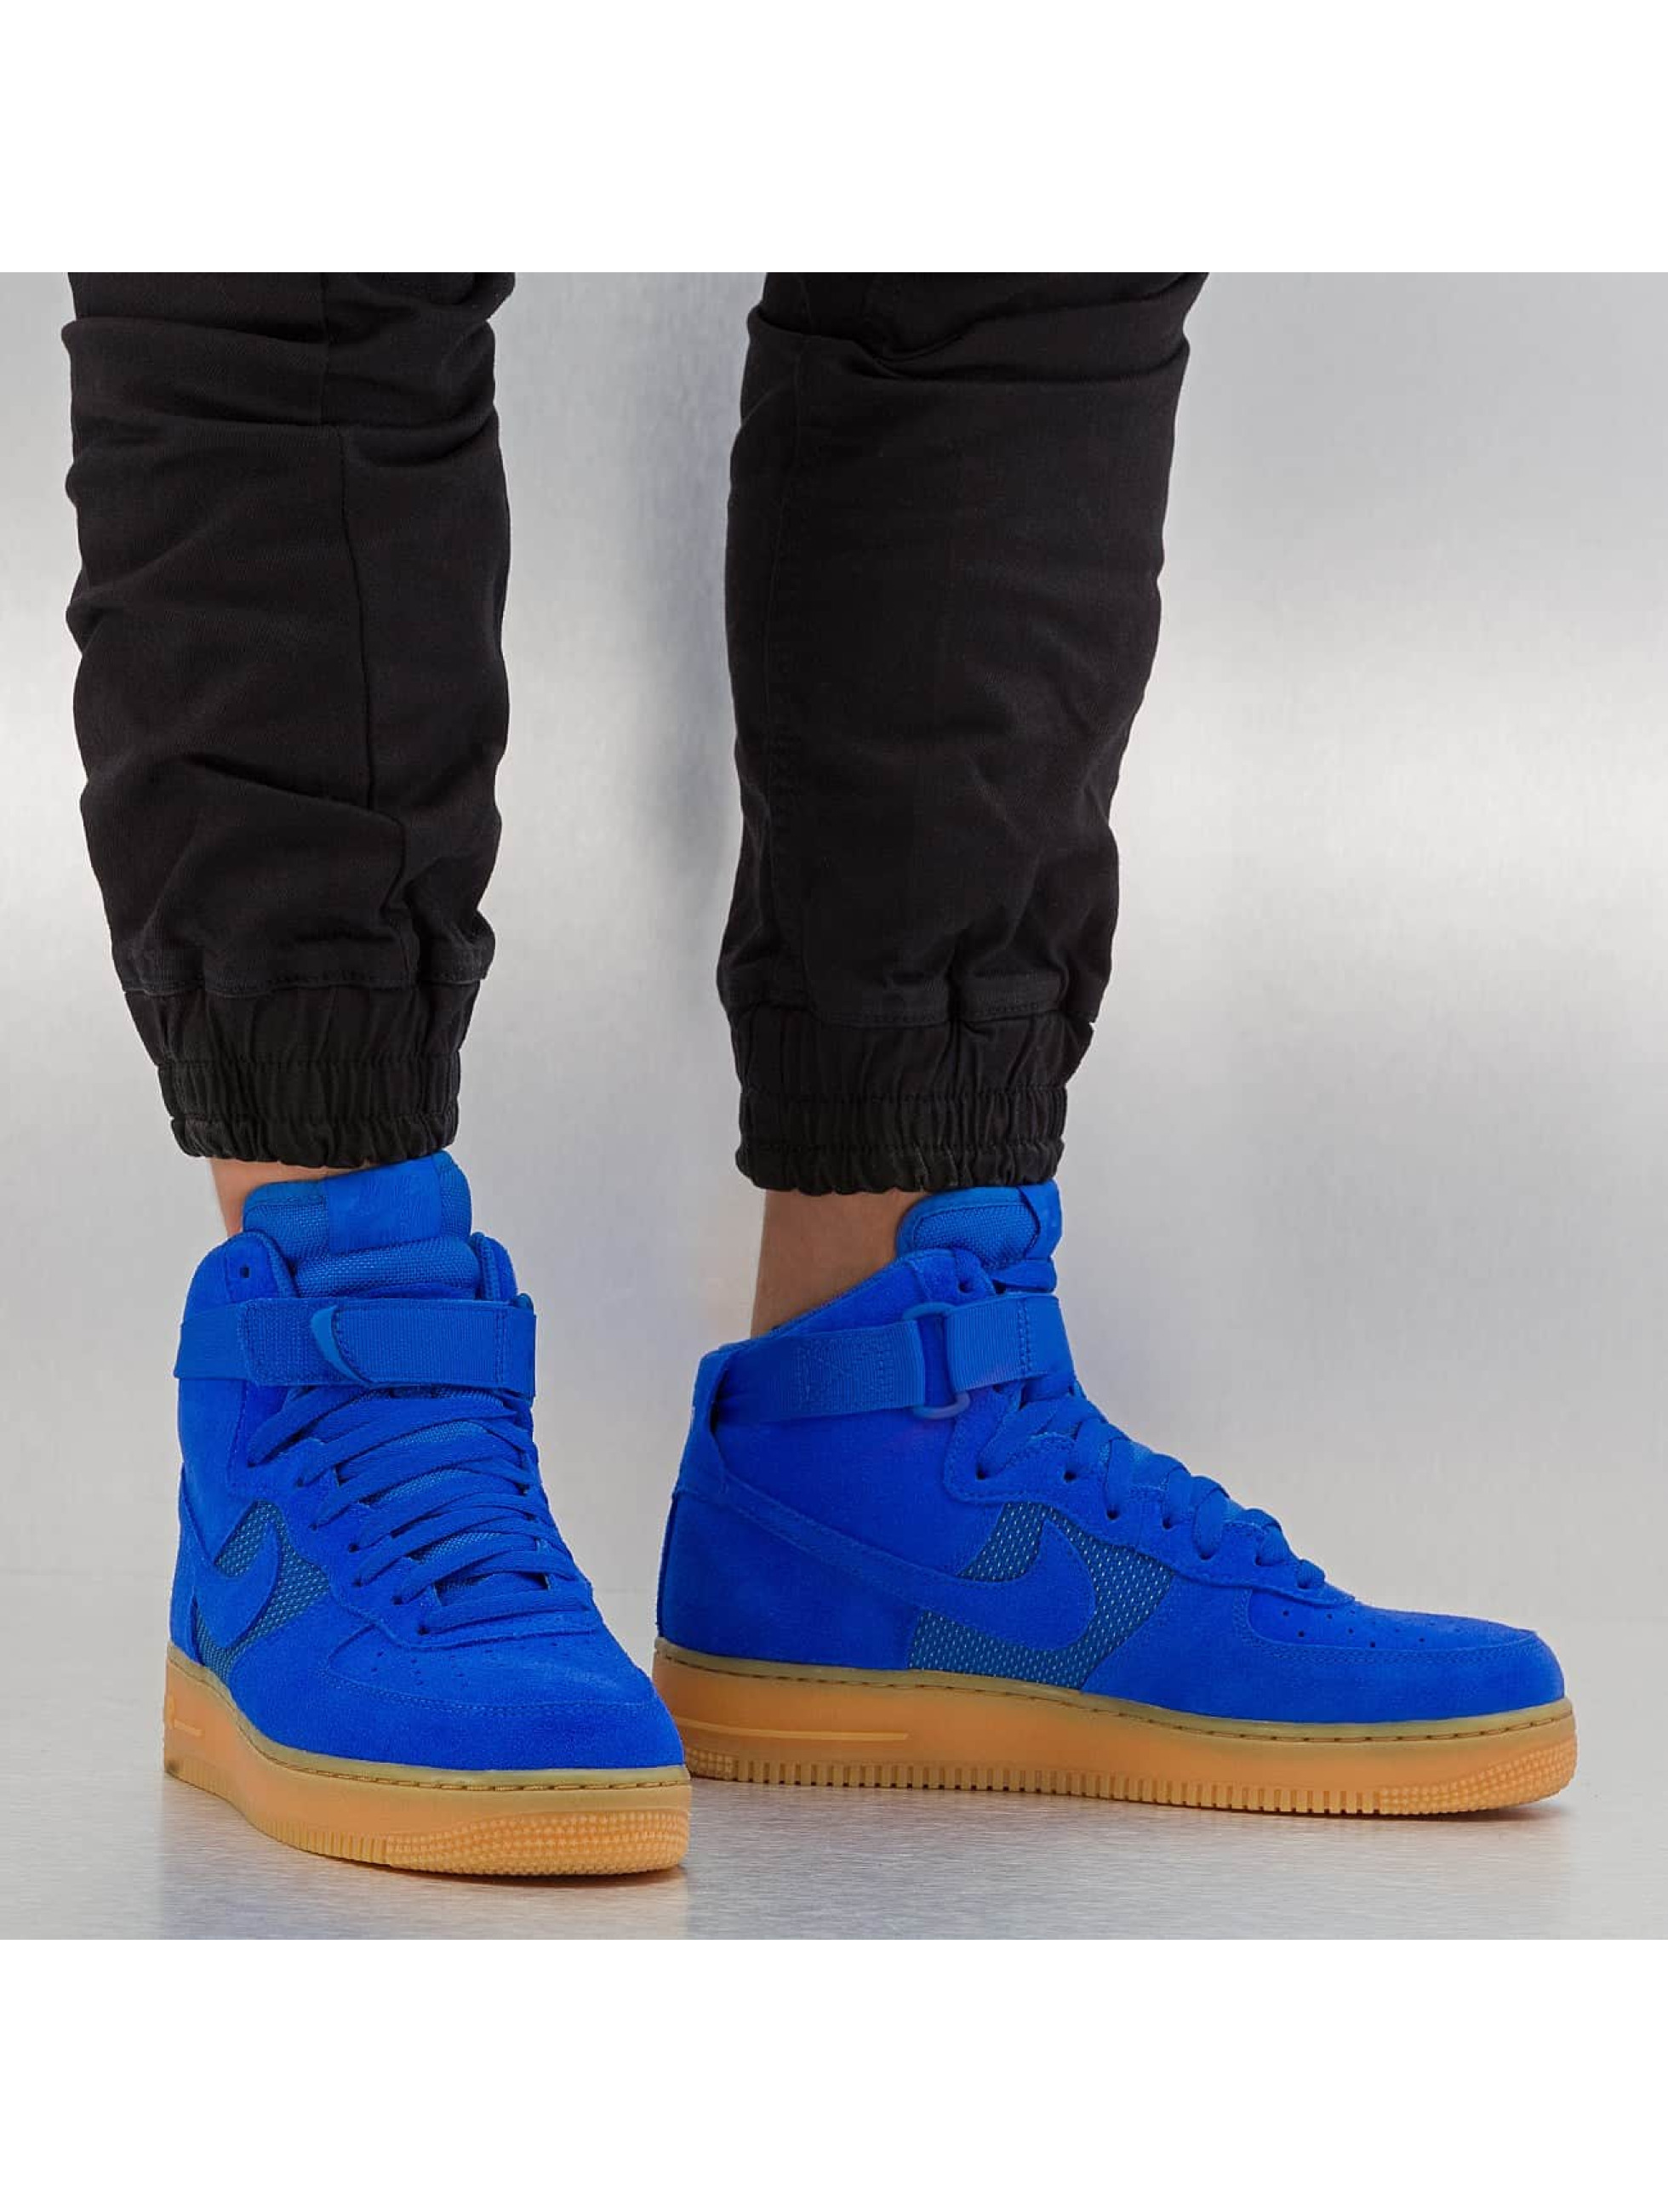 Nike schoen / sneaker Air Force 1 High 07 LV8 in blauw